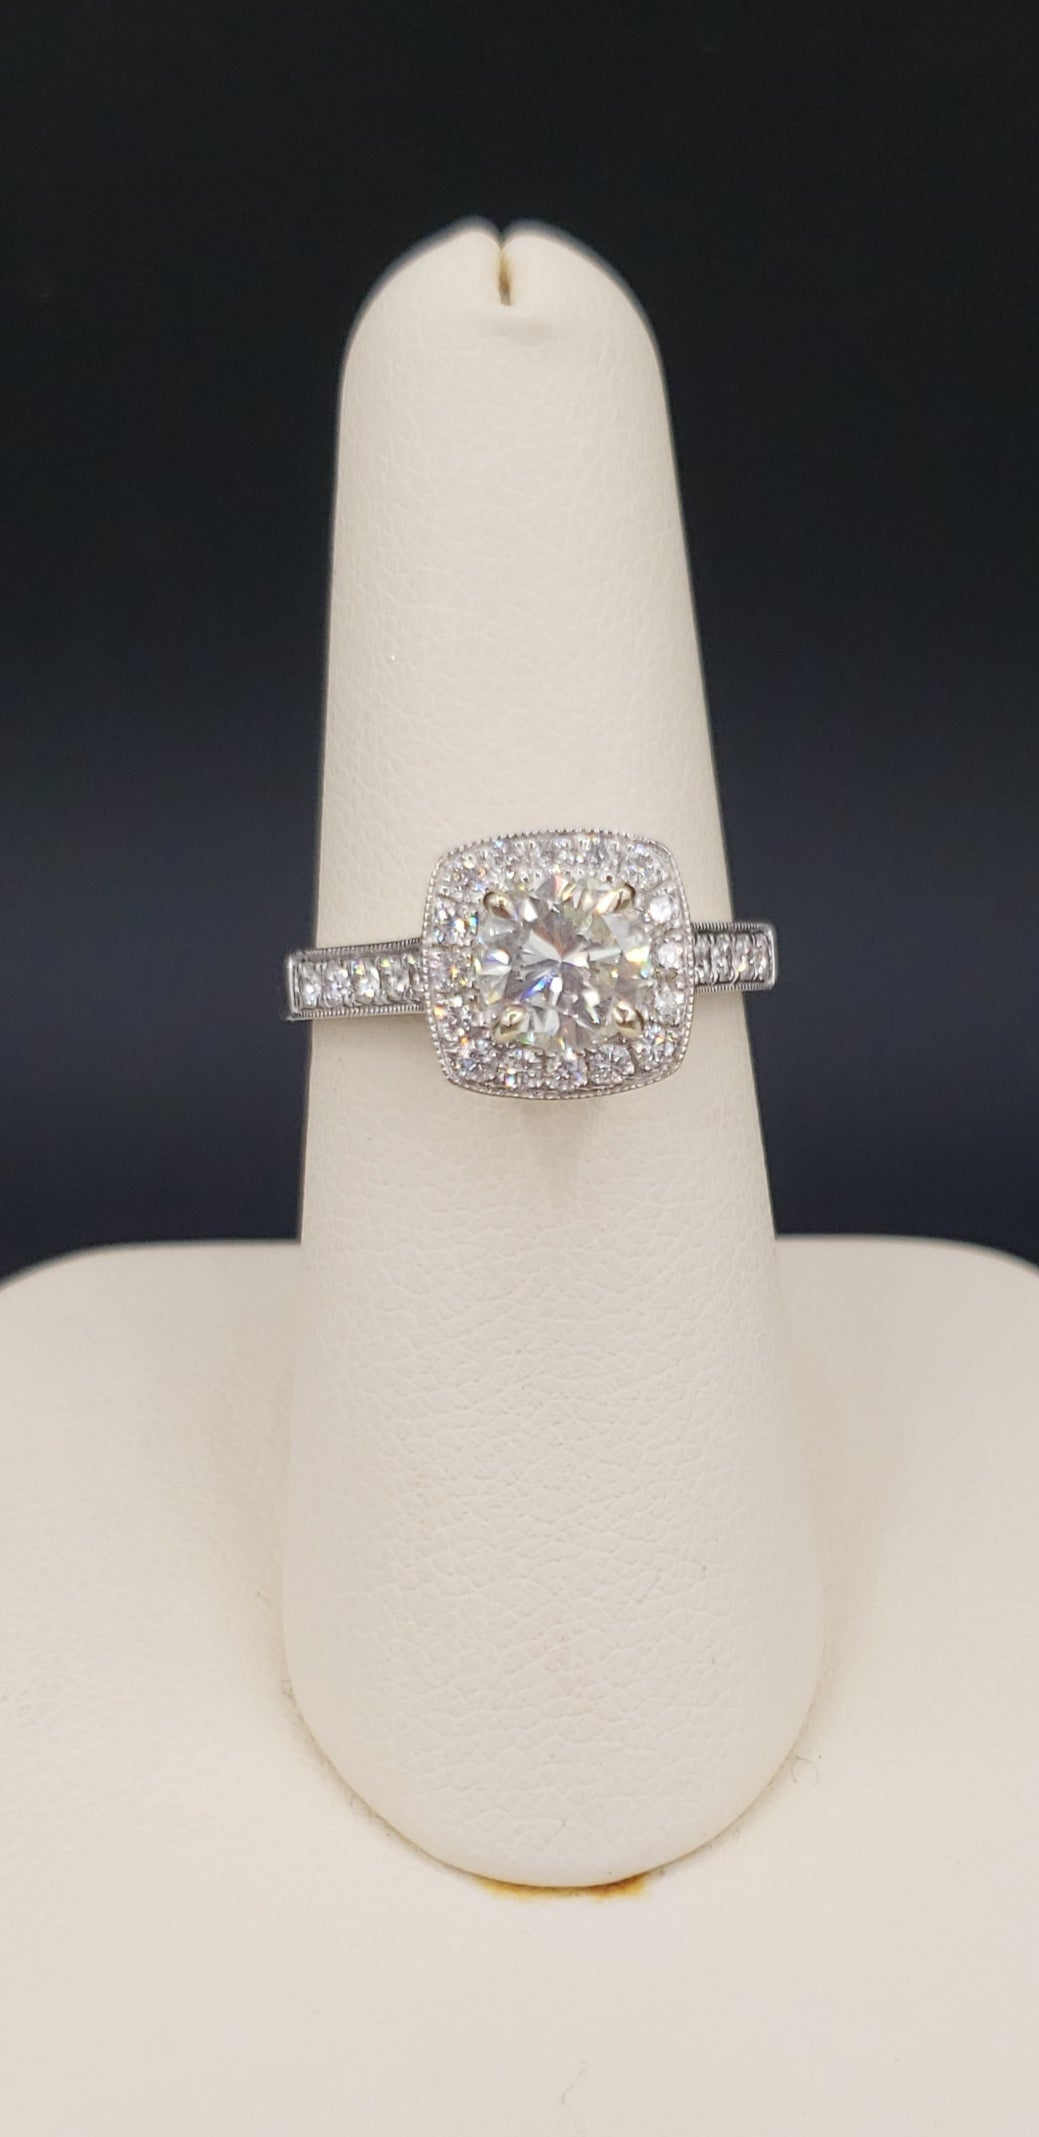 14K White Gold Brilliant Cut (Round) Diamond Engagement Ring with Diamond Halo